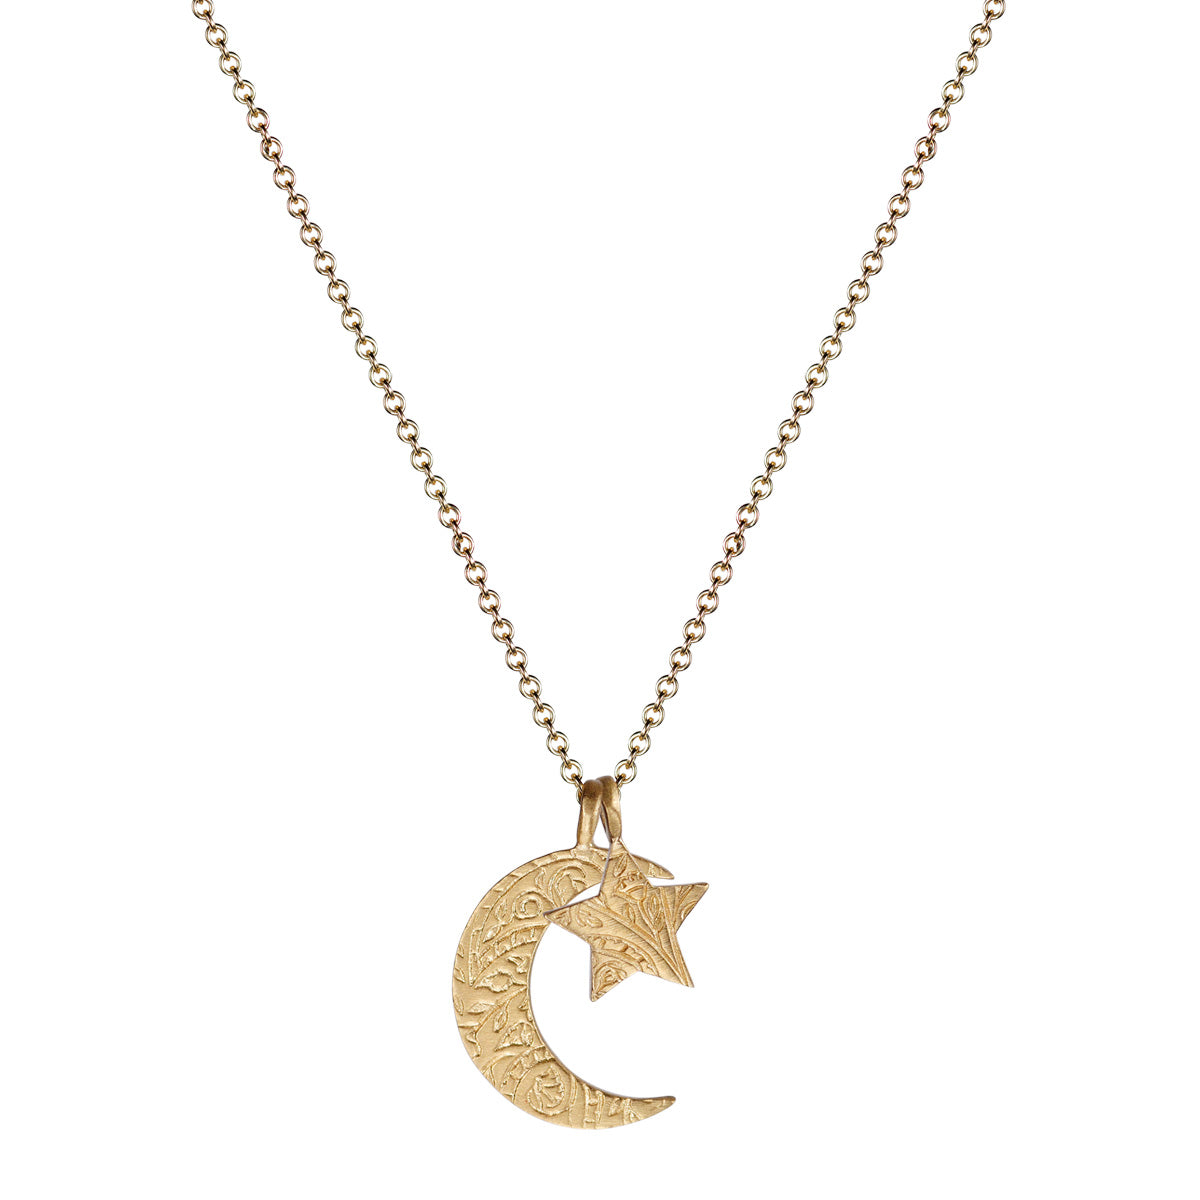 10K Gold Small Paisley Moon & Star Charm Pendant